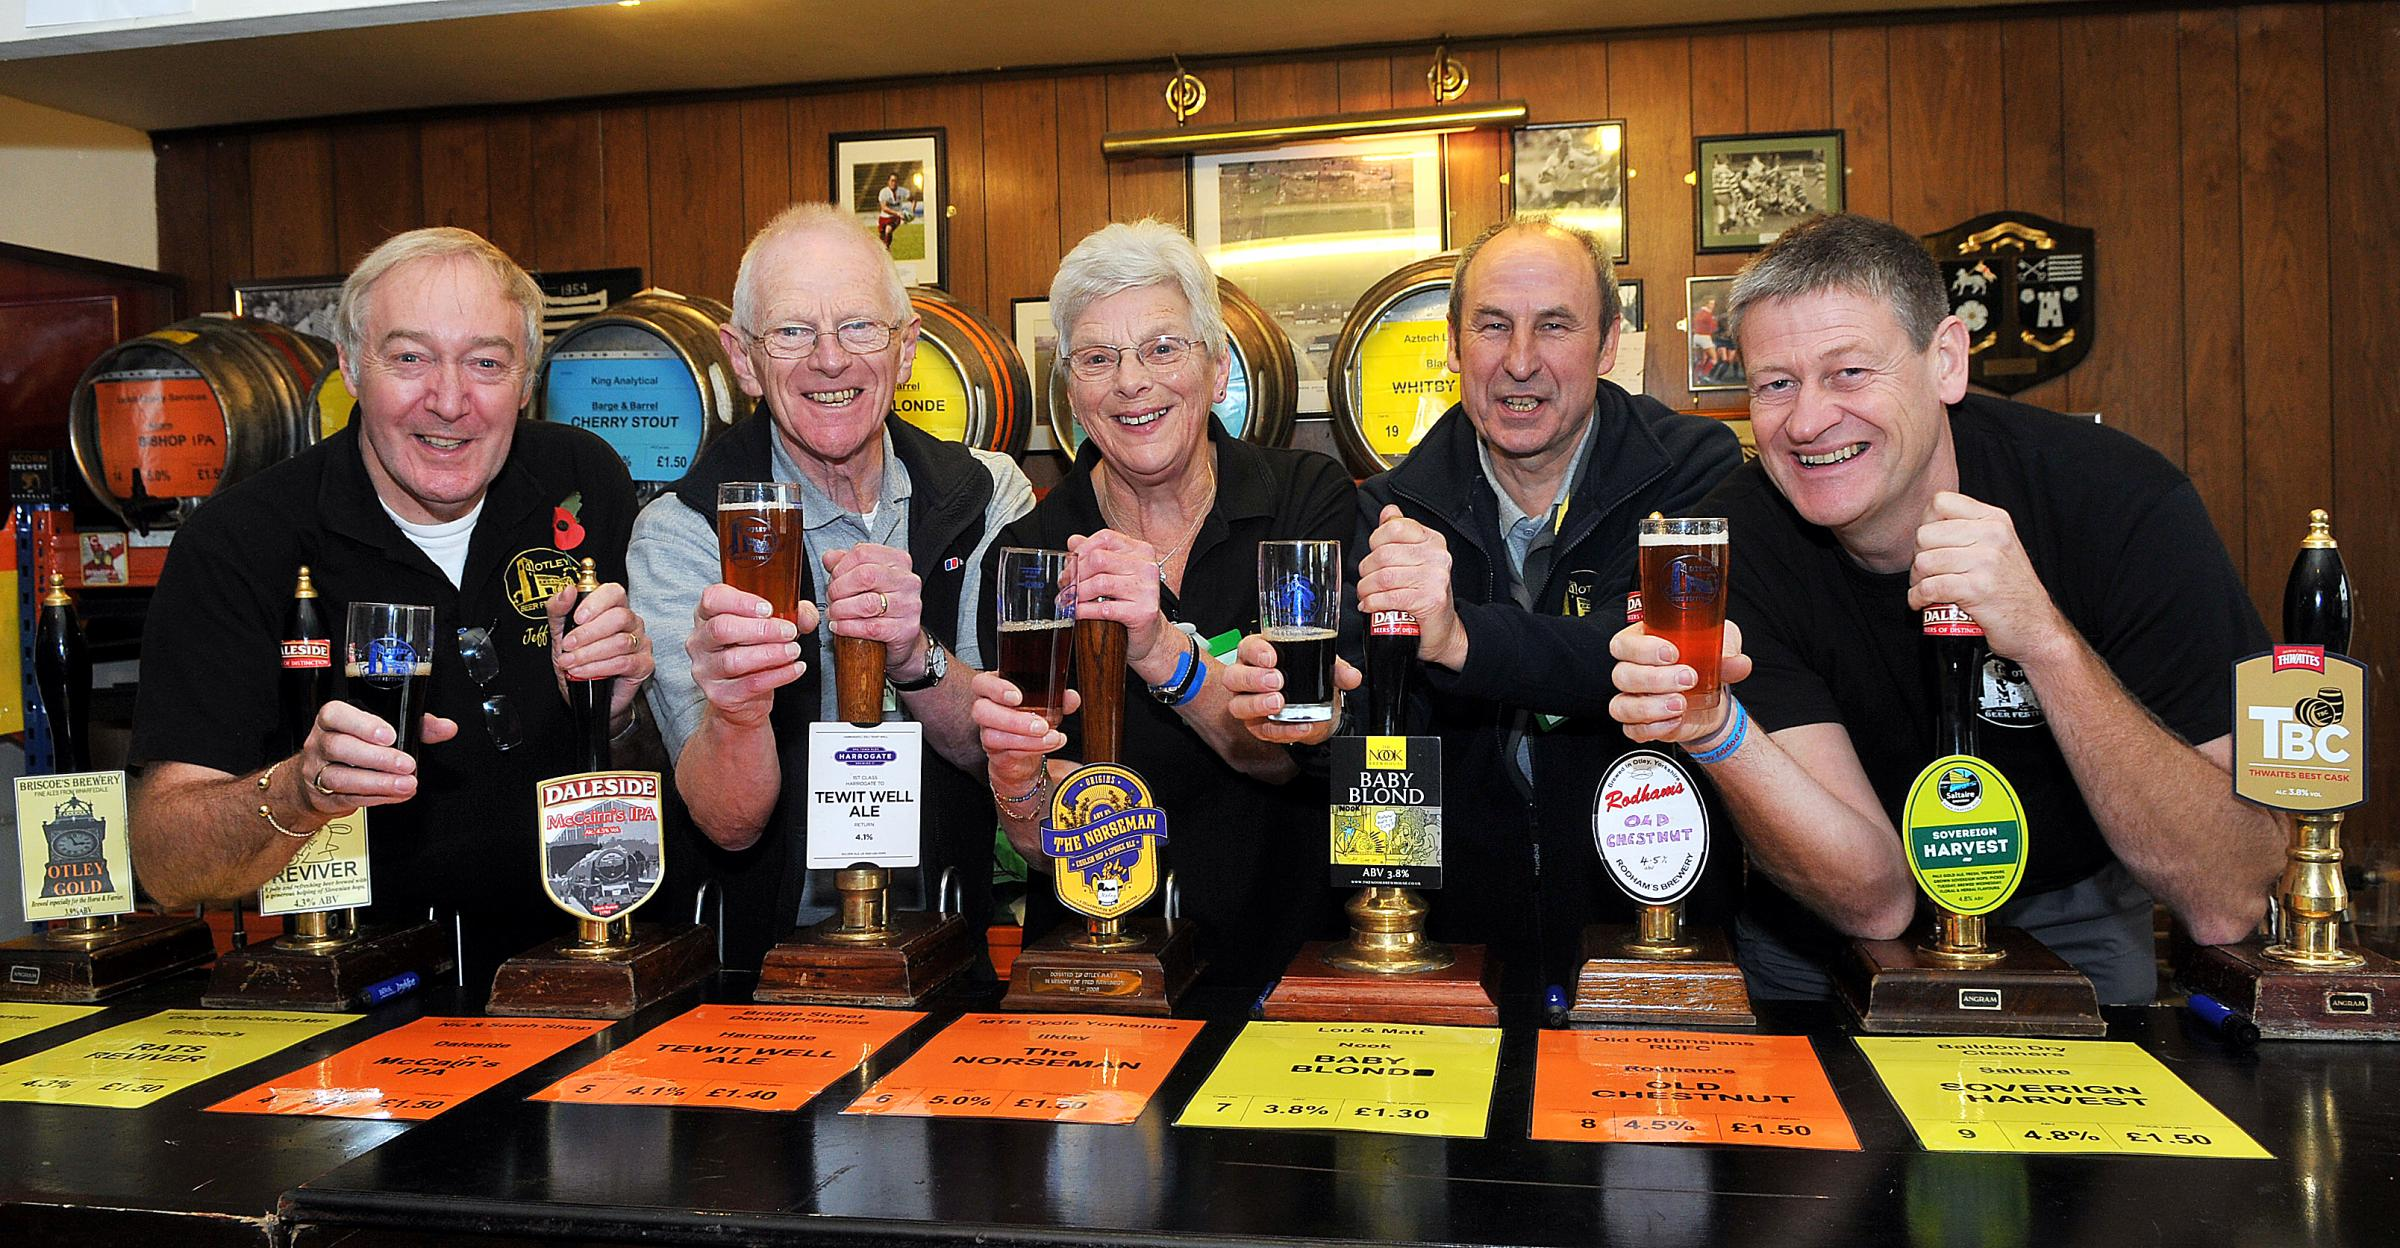 Ready for the off at Otley Beer Festival are, from the left, Jeff Utley, Allan Boddy, Margaret Holmes, Alan Raw and Mark Rothery